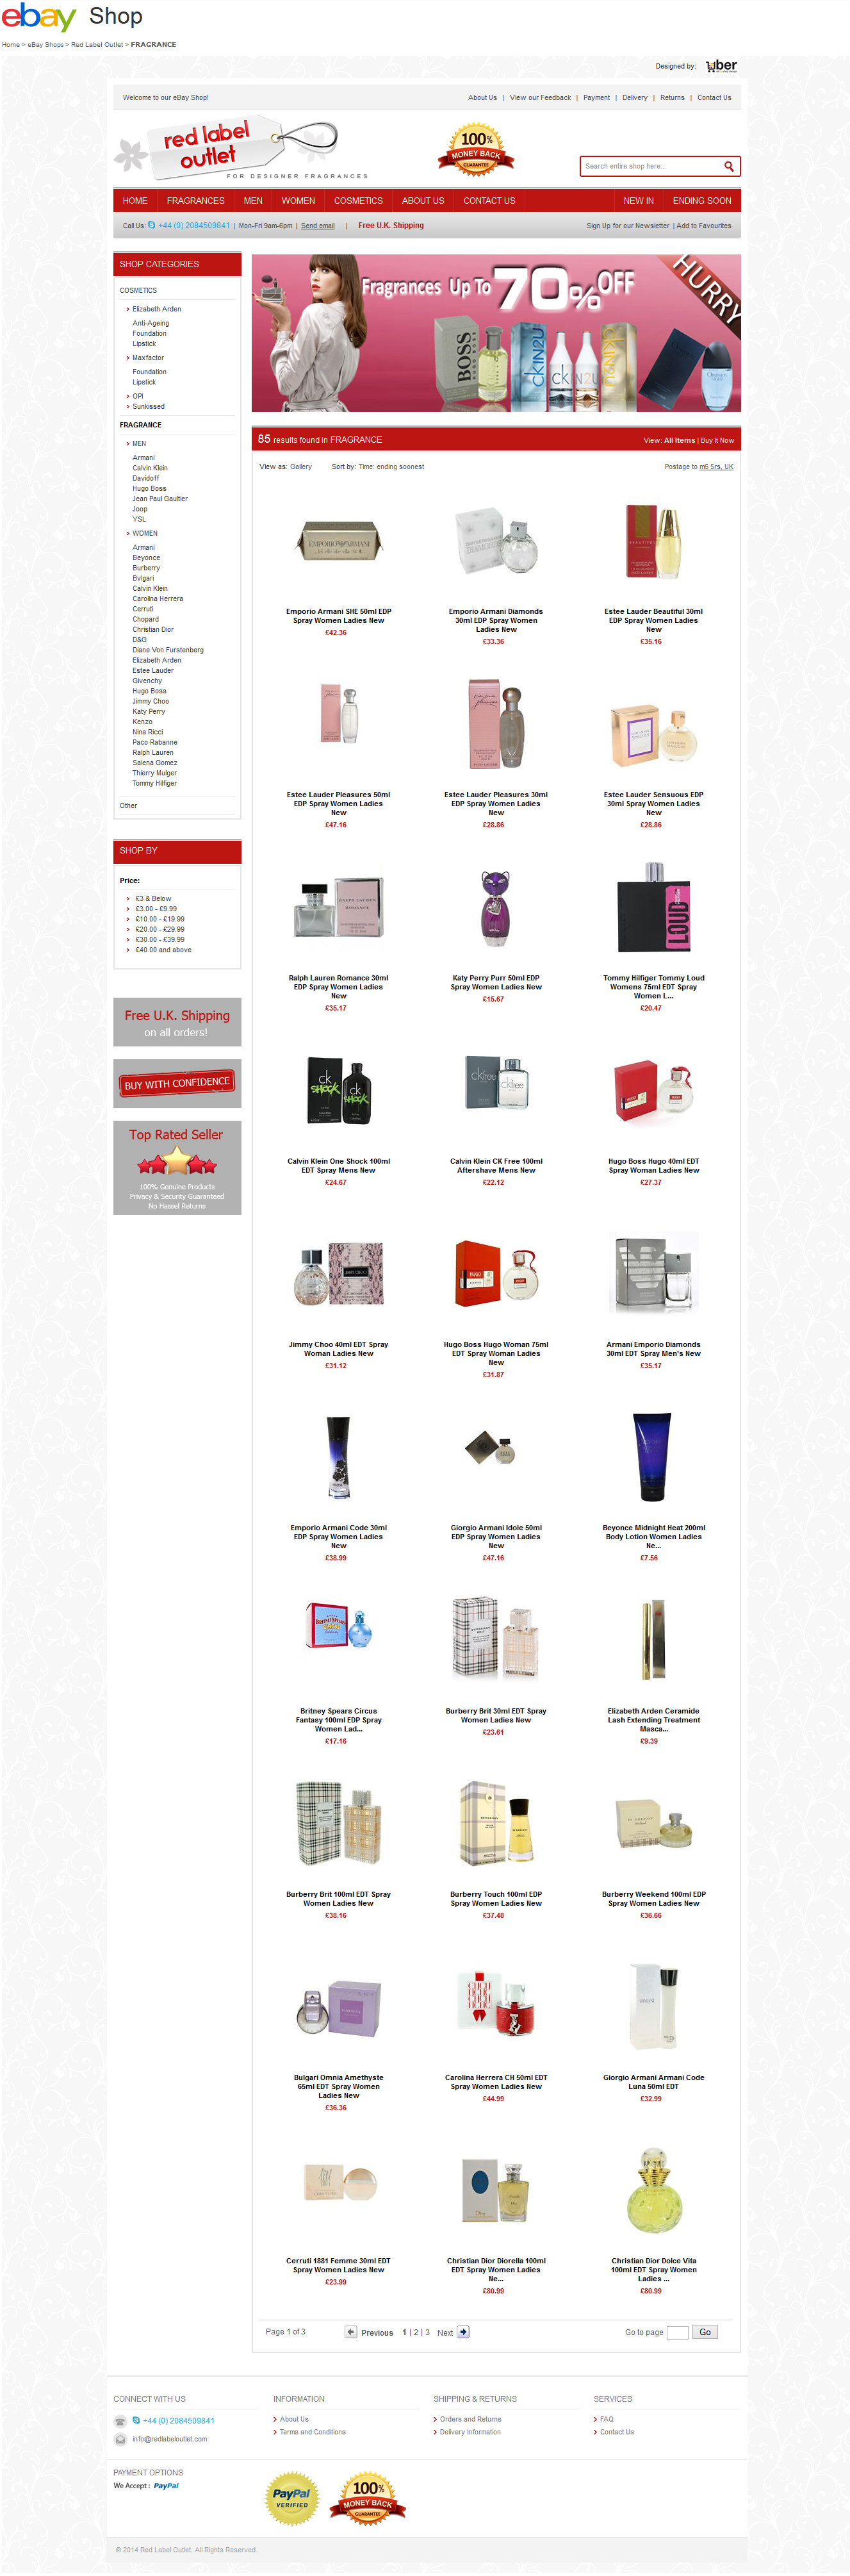 Red Label Outlet store on eBay category design